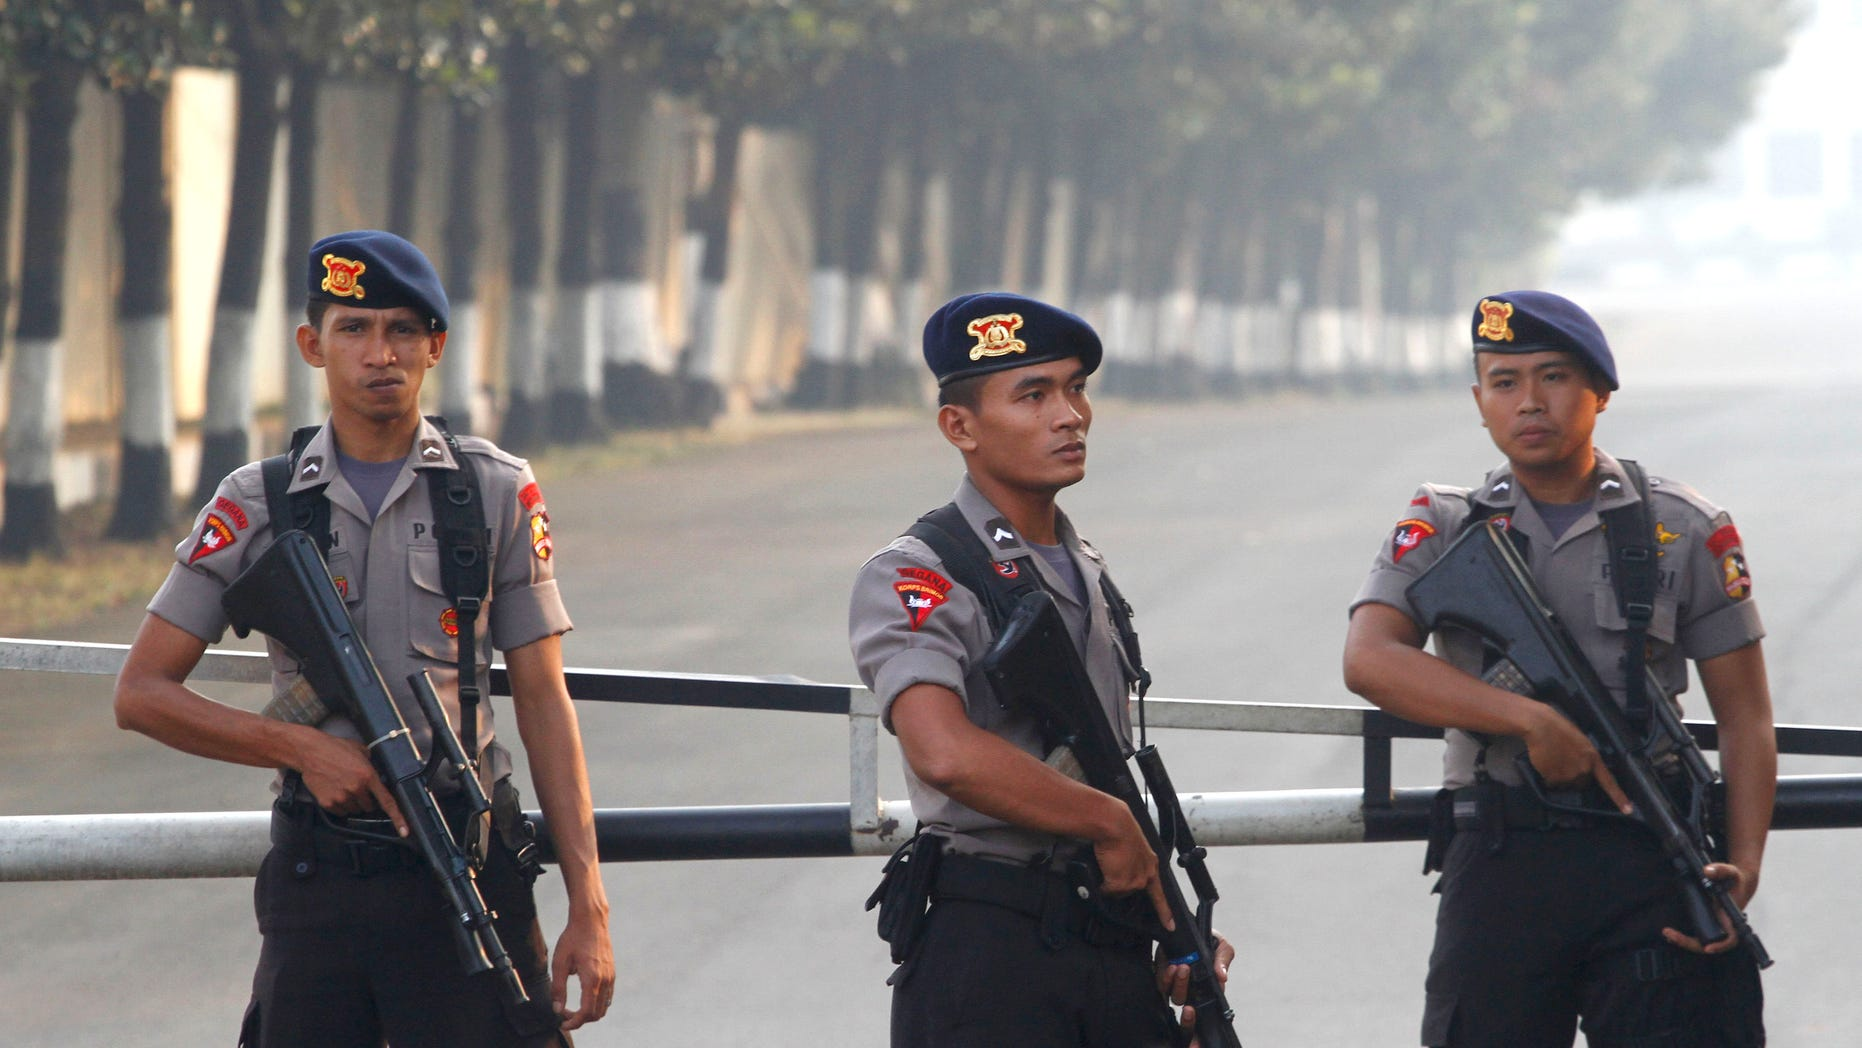 August 11: Armed officers man a checkpoint at the gate of a police compound where Indonesian militant, Umar Patek, is detained on the outskirts of Jakarta, Indonesia. Patek, who allegedly made the explosives used in the 2002 Bali bombings, returned to his homeland under tight security more than six months after he was captured in northwest Pakistan, officials said.